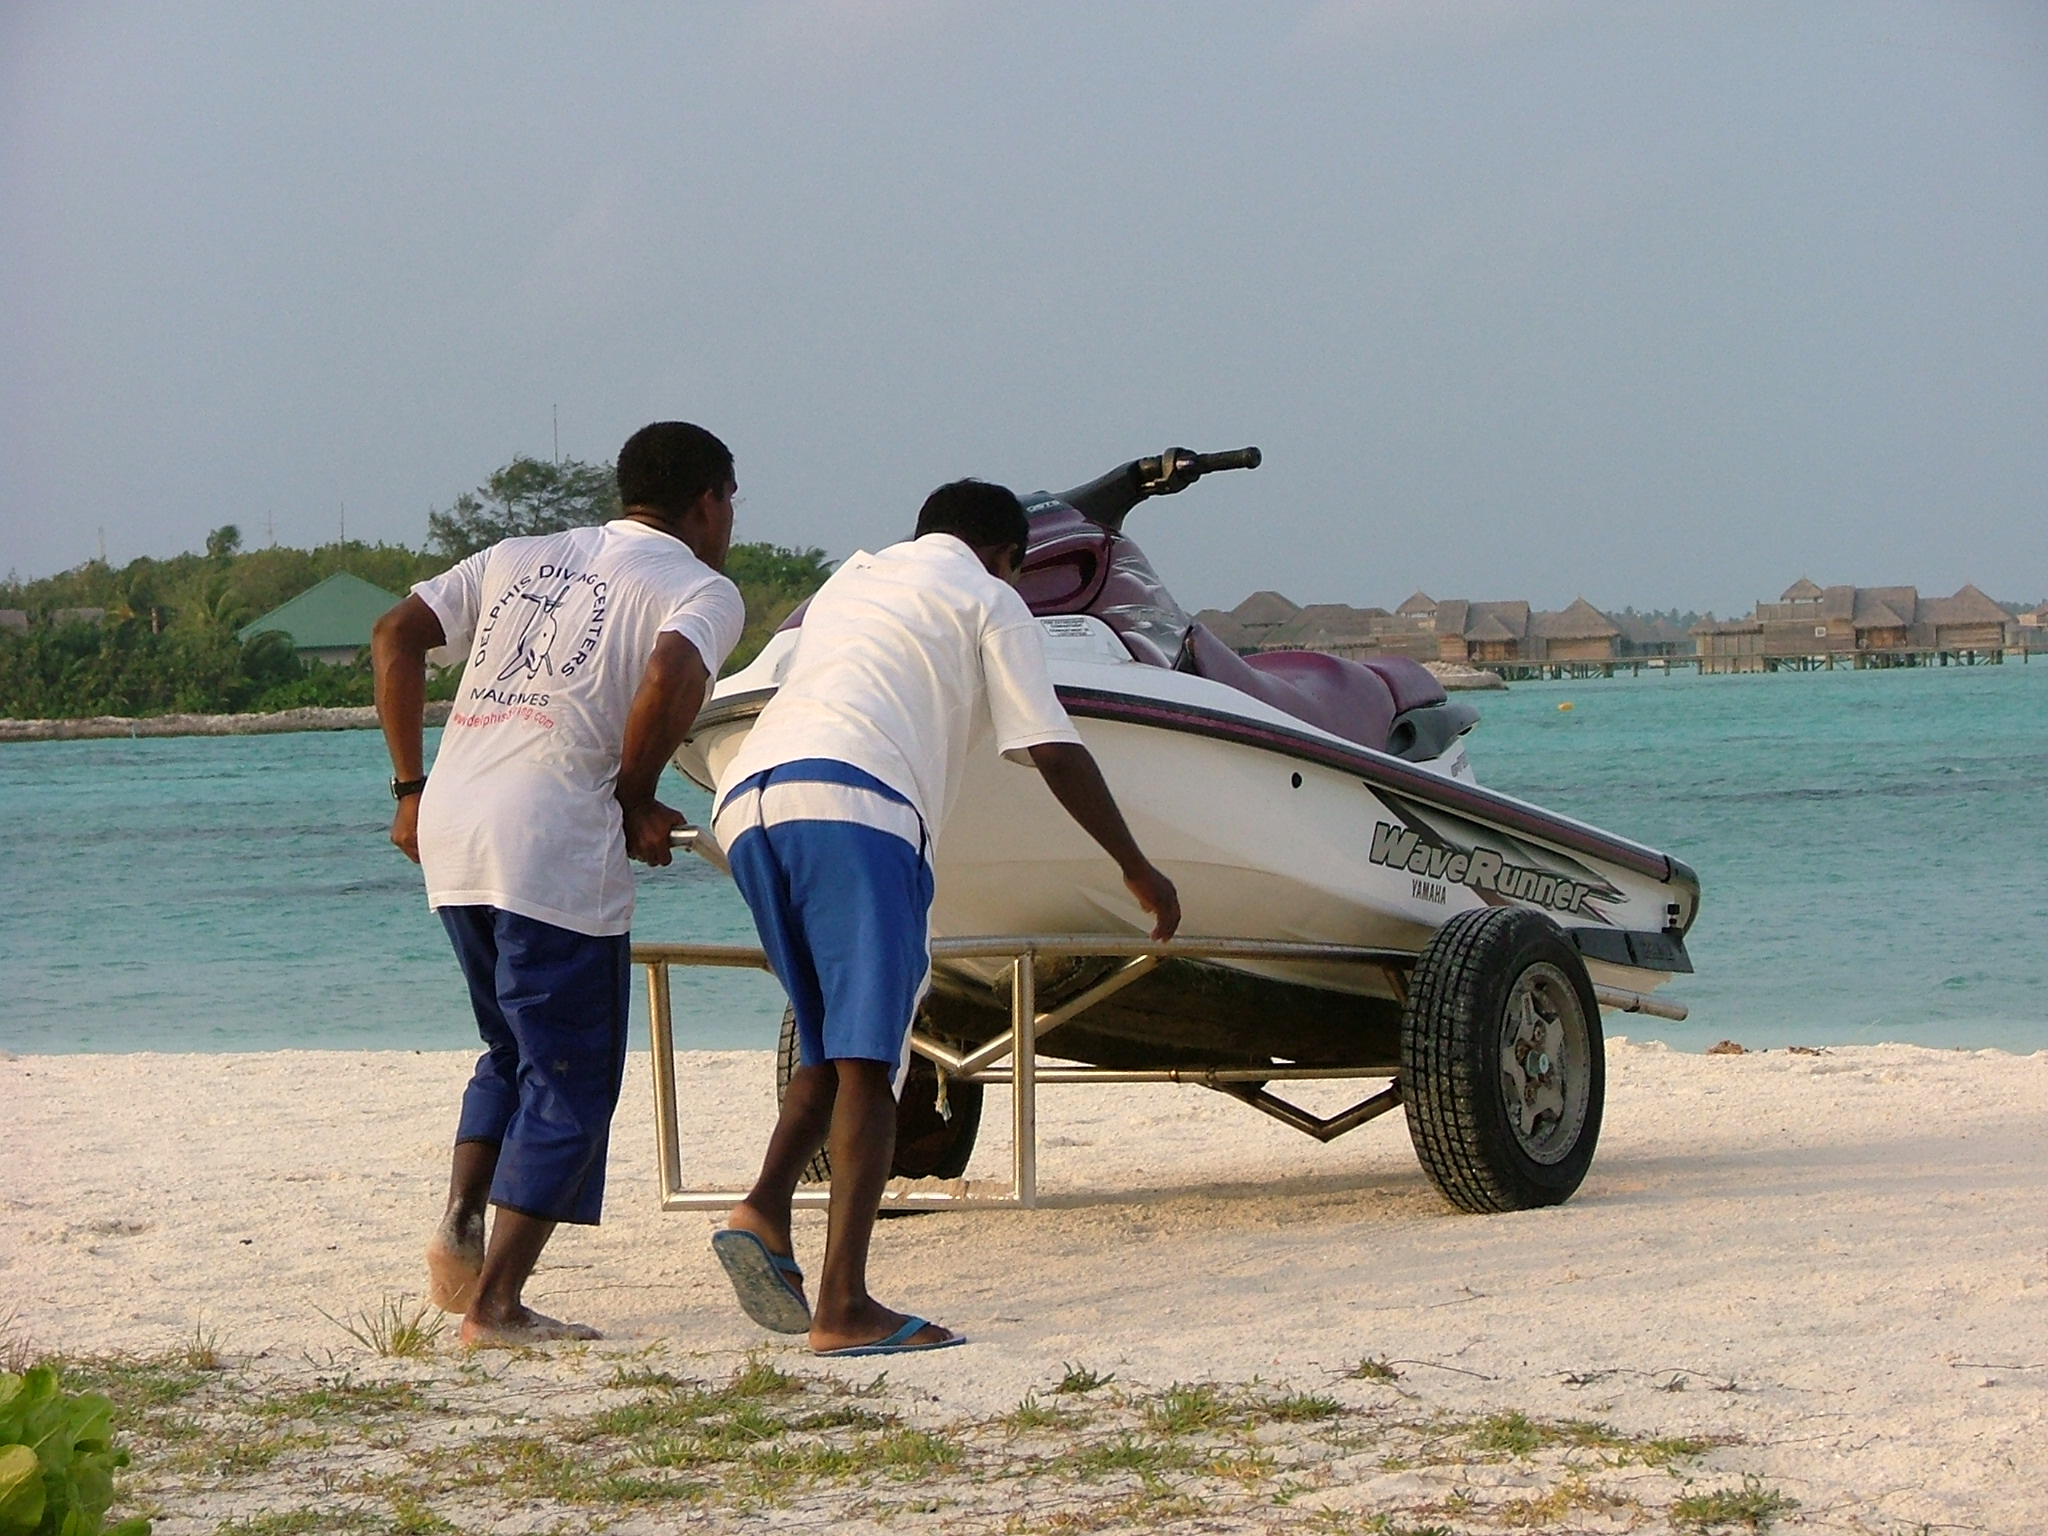 melvin nature characters humanoids vehicles water waterscooter jetski two men pushing a cart beachscape maladives